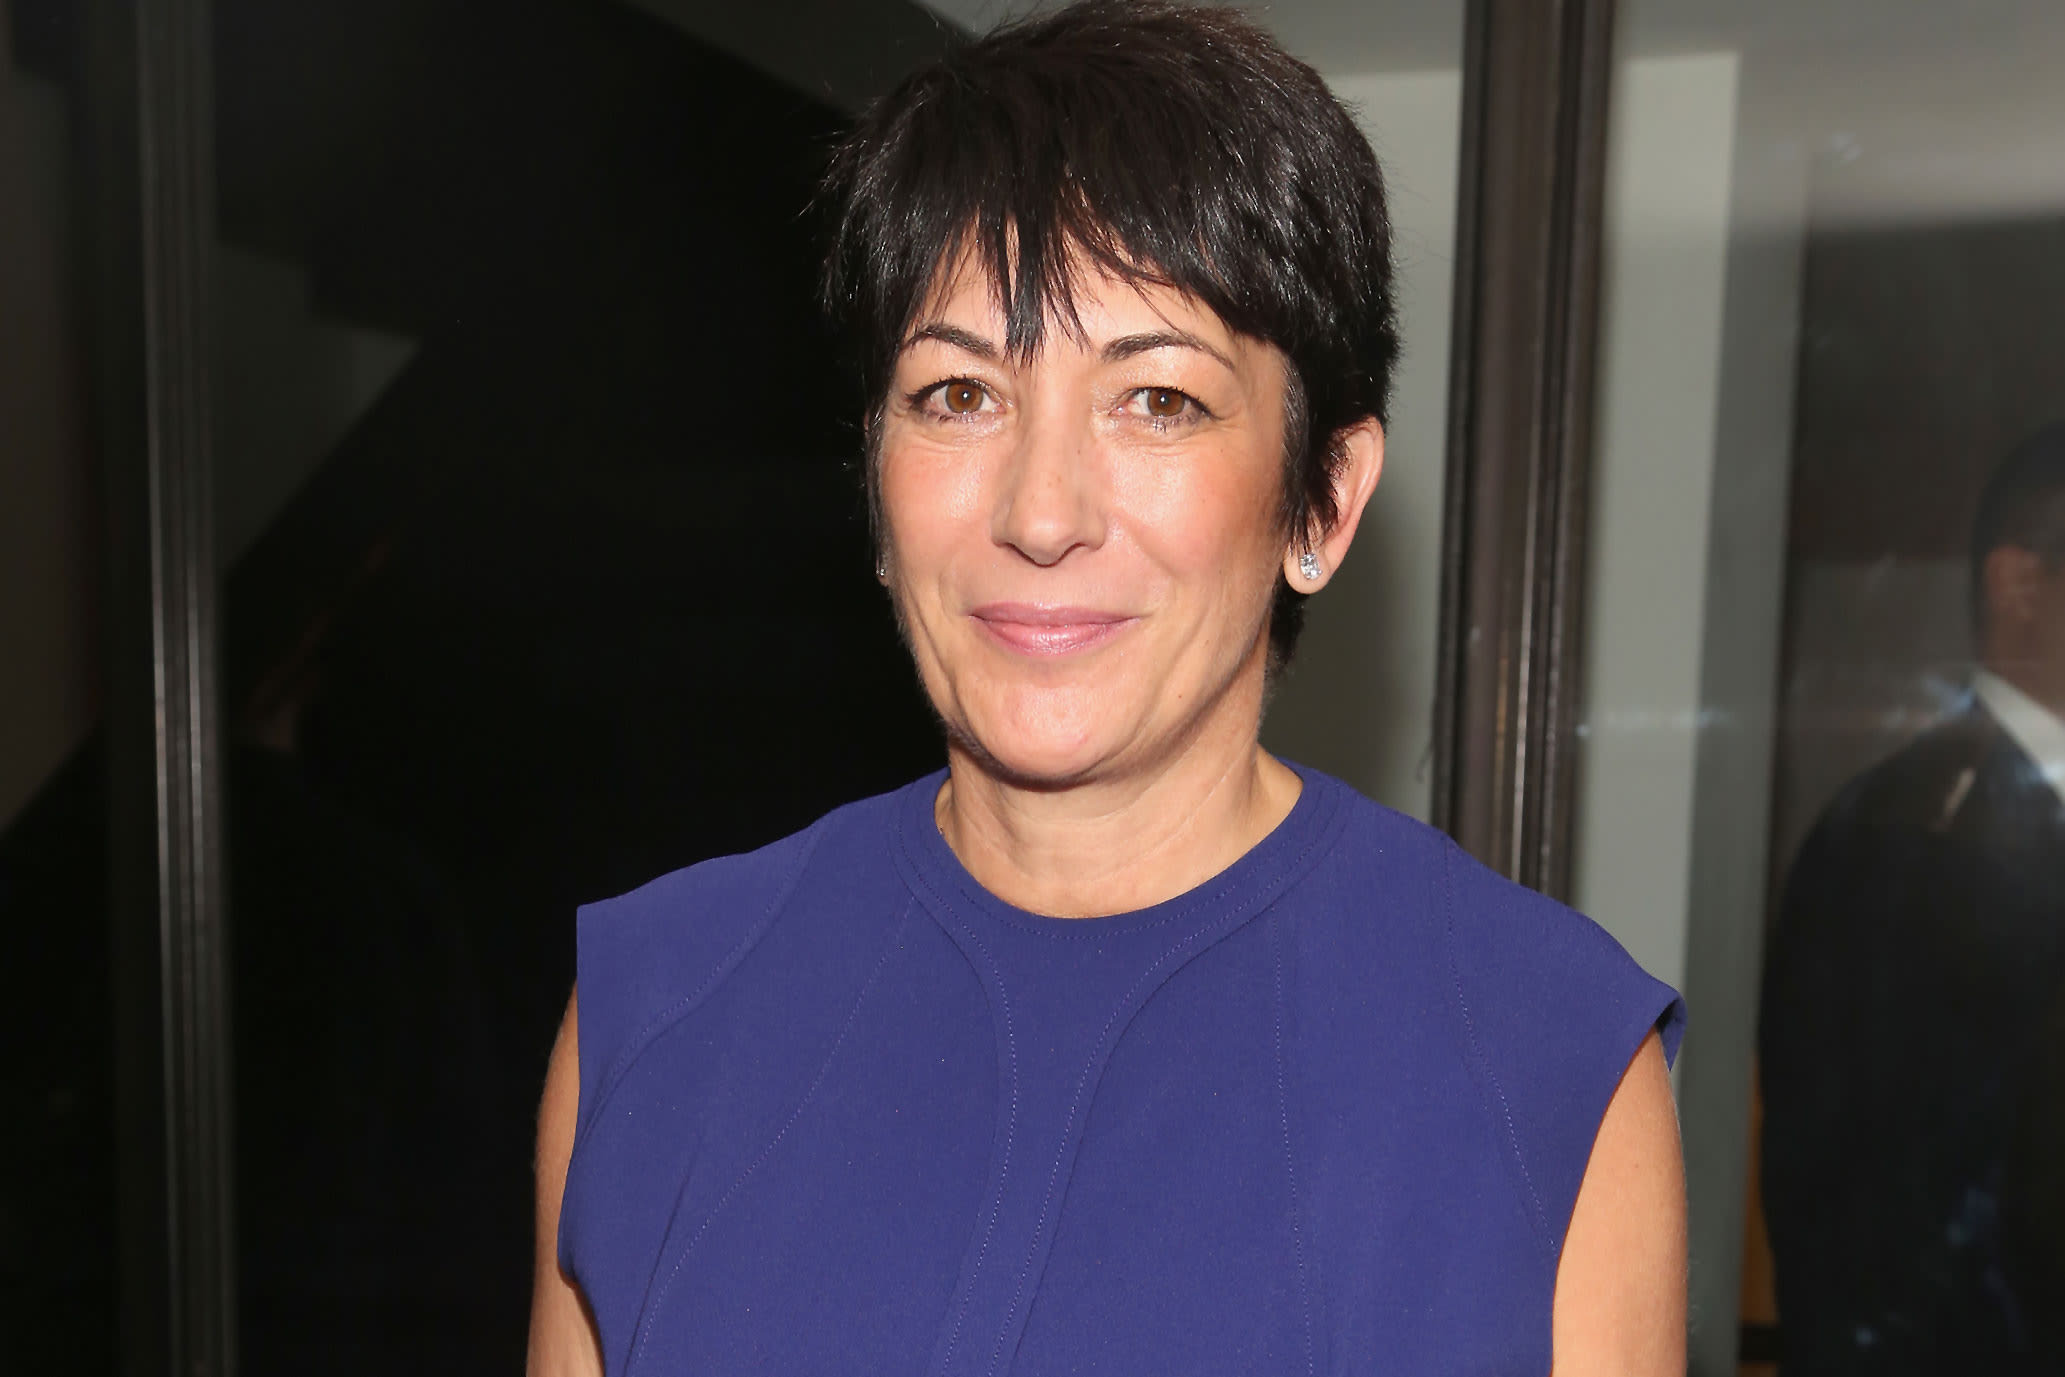 Mystery of Ghislaine Maxwell's whereabouts deepens as Jeffrey Epstein accusers eye his alleged madam thumbnail